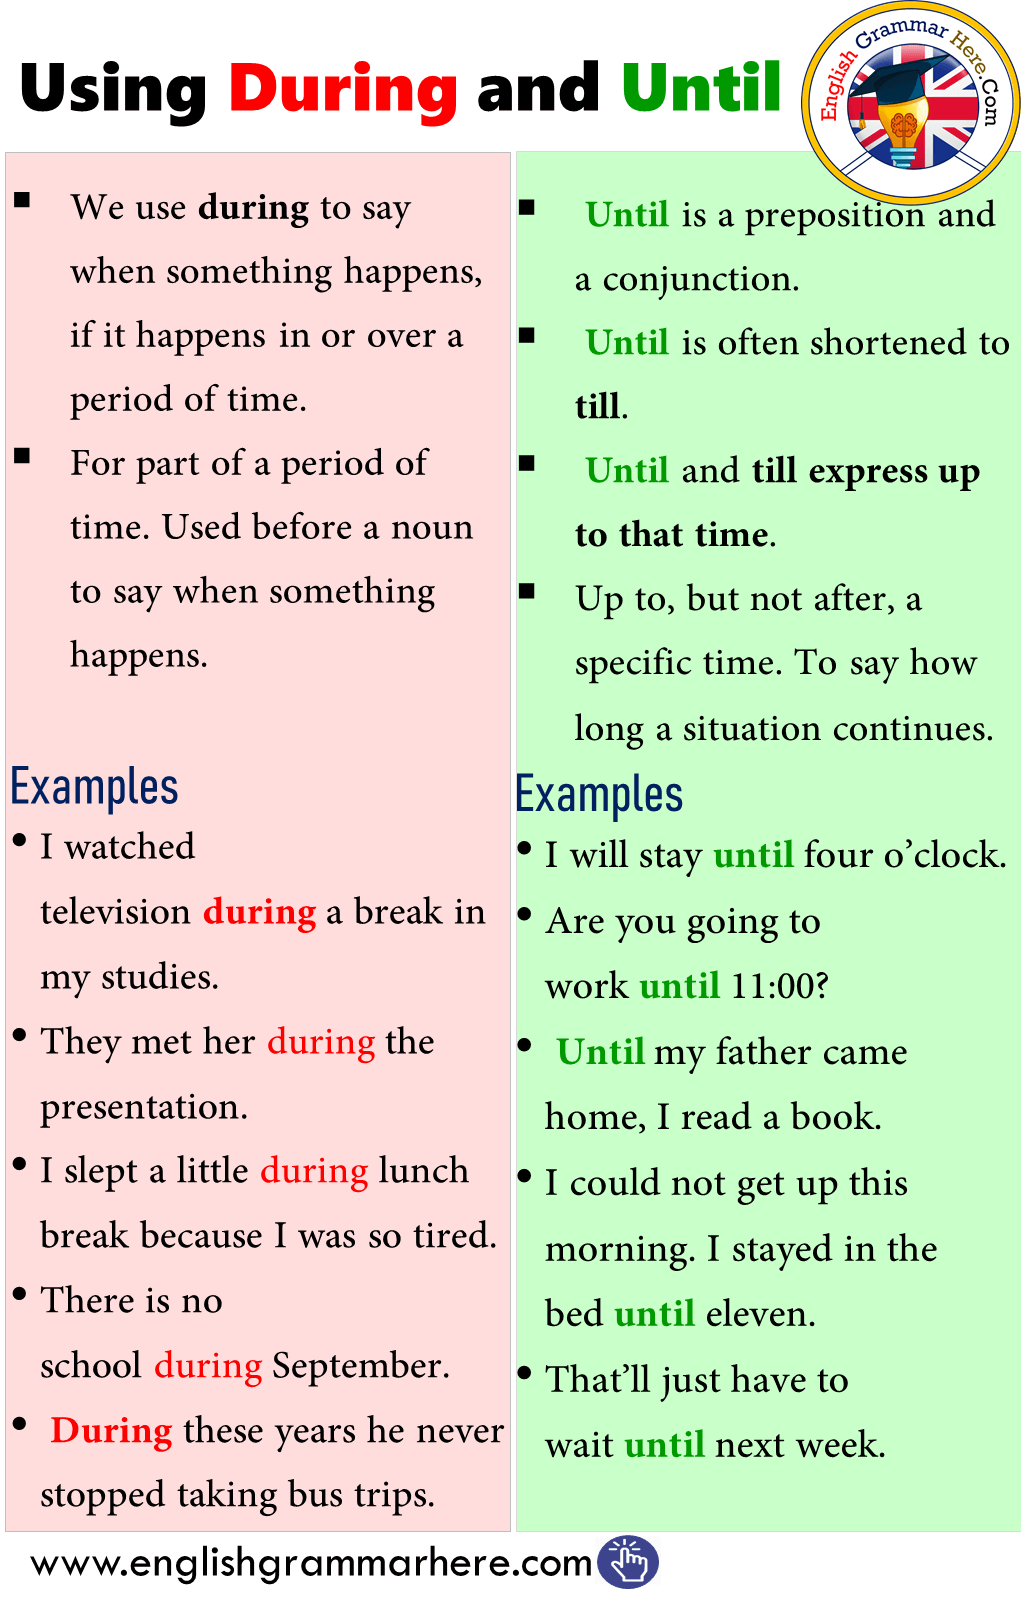 Using During and Until in English